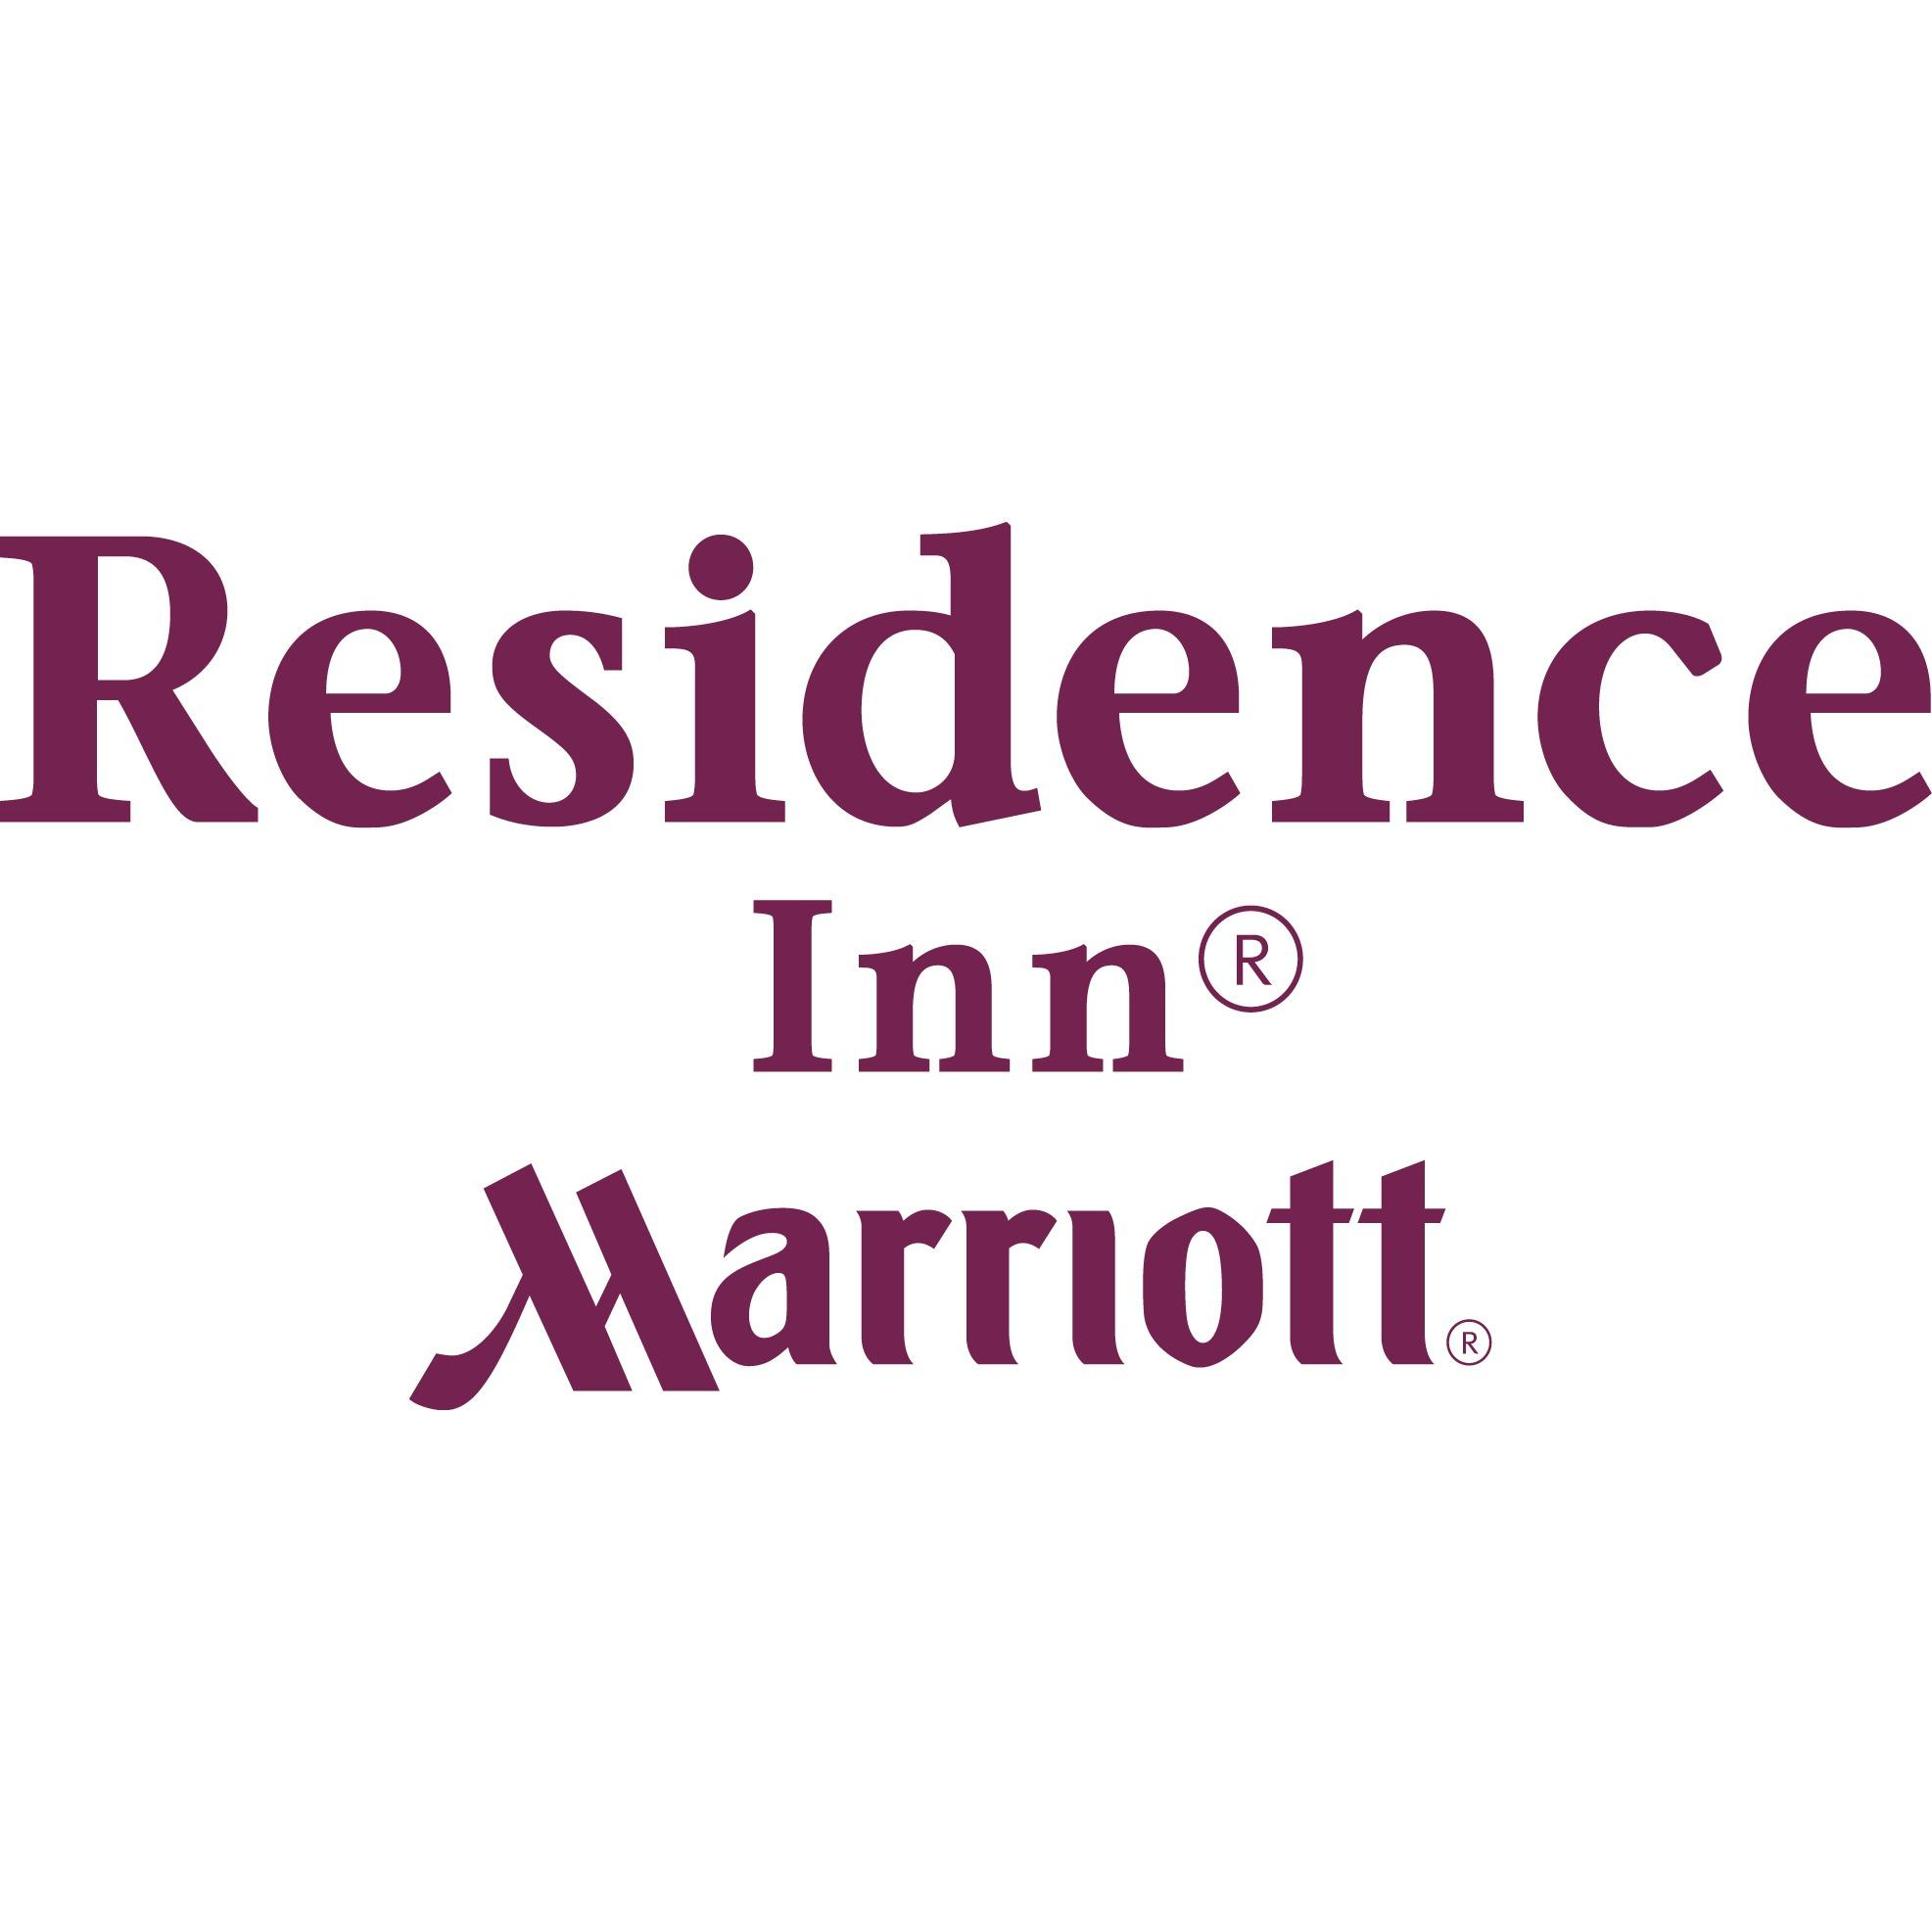 Residence Inn by Marriott Phoenix Glendale Sports & Entertainment District - Glendale, AZ - Hotels & Motels